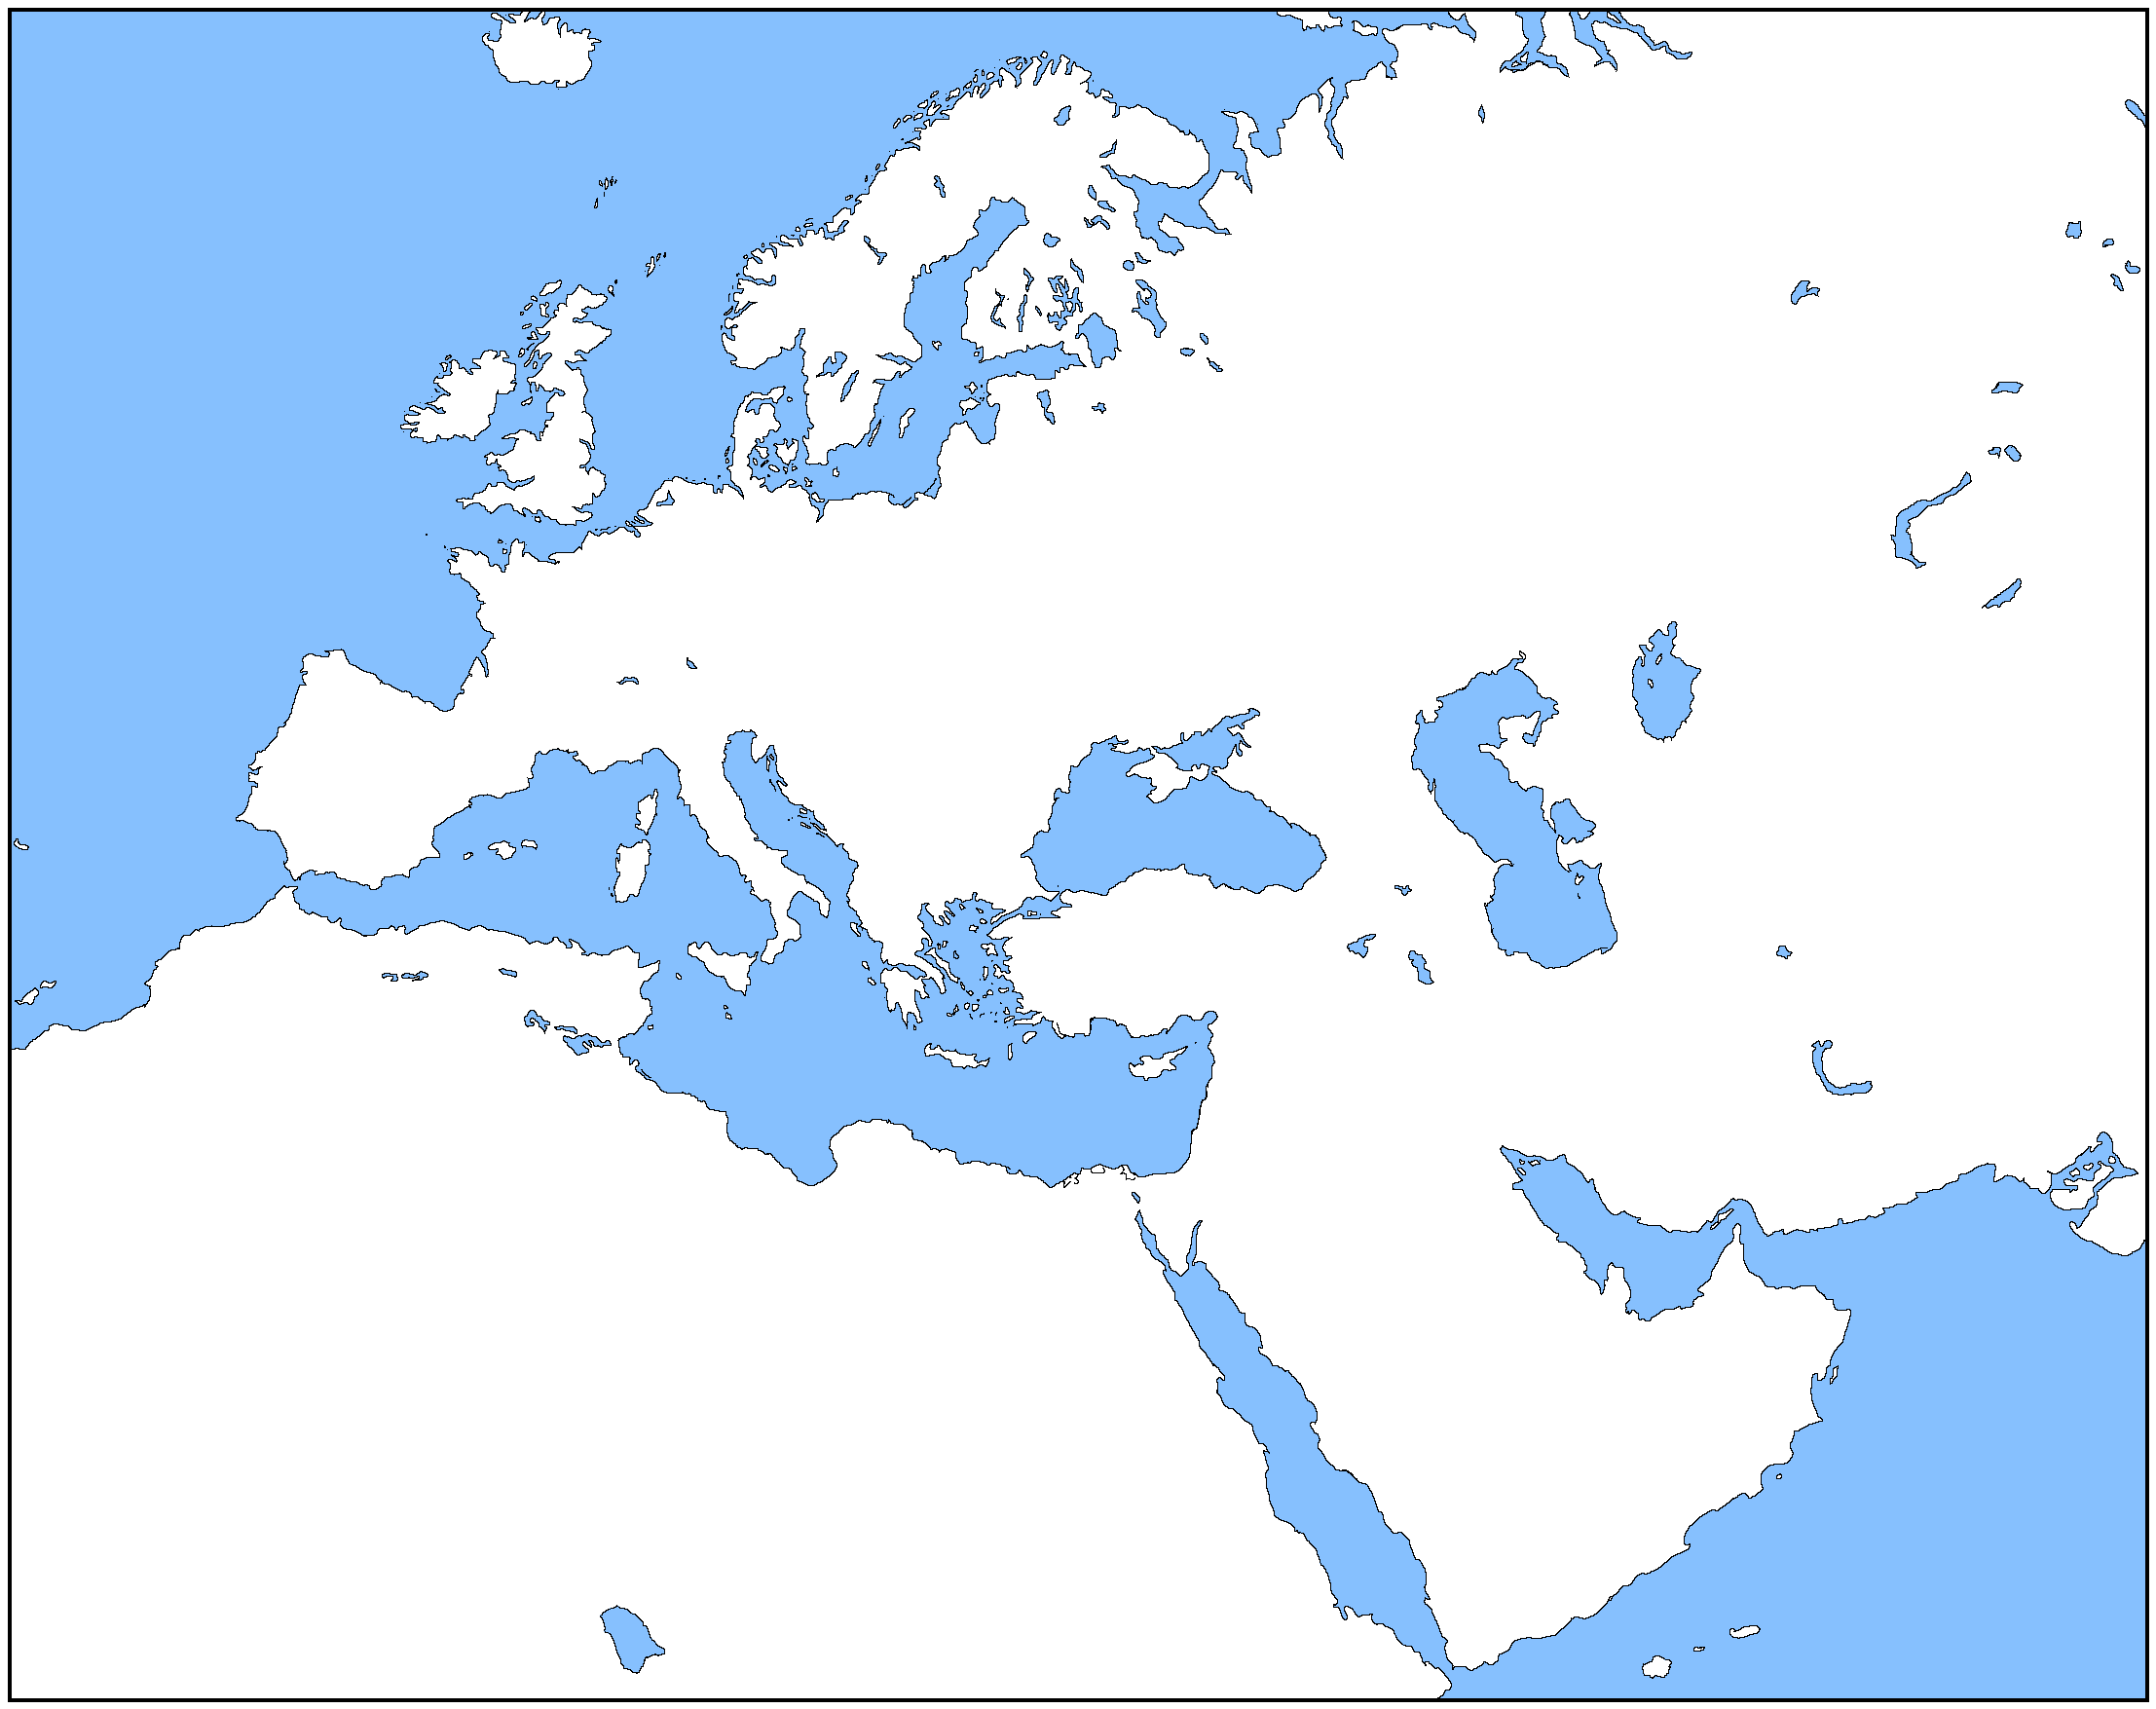 Map Of Europe Blank No Borders.Blank Map Directory All Of Europe 2 Alternatehistory Com Wiki